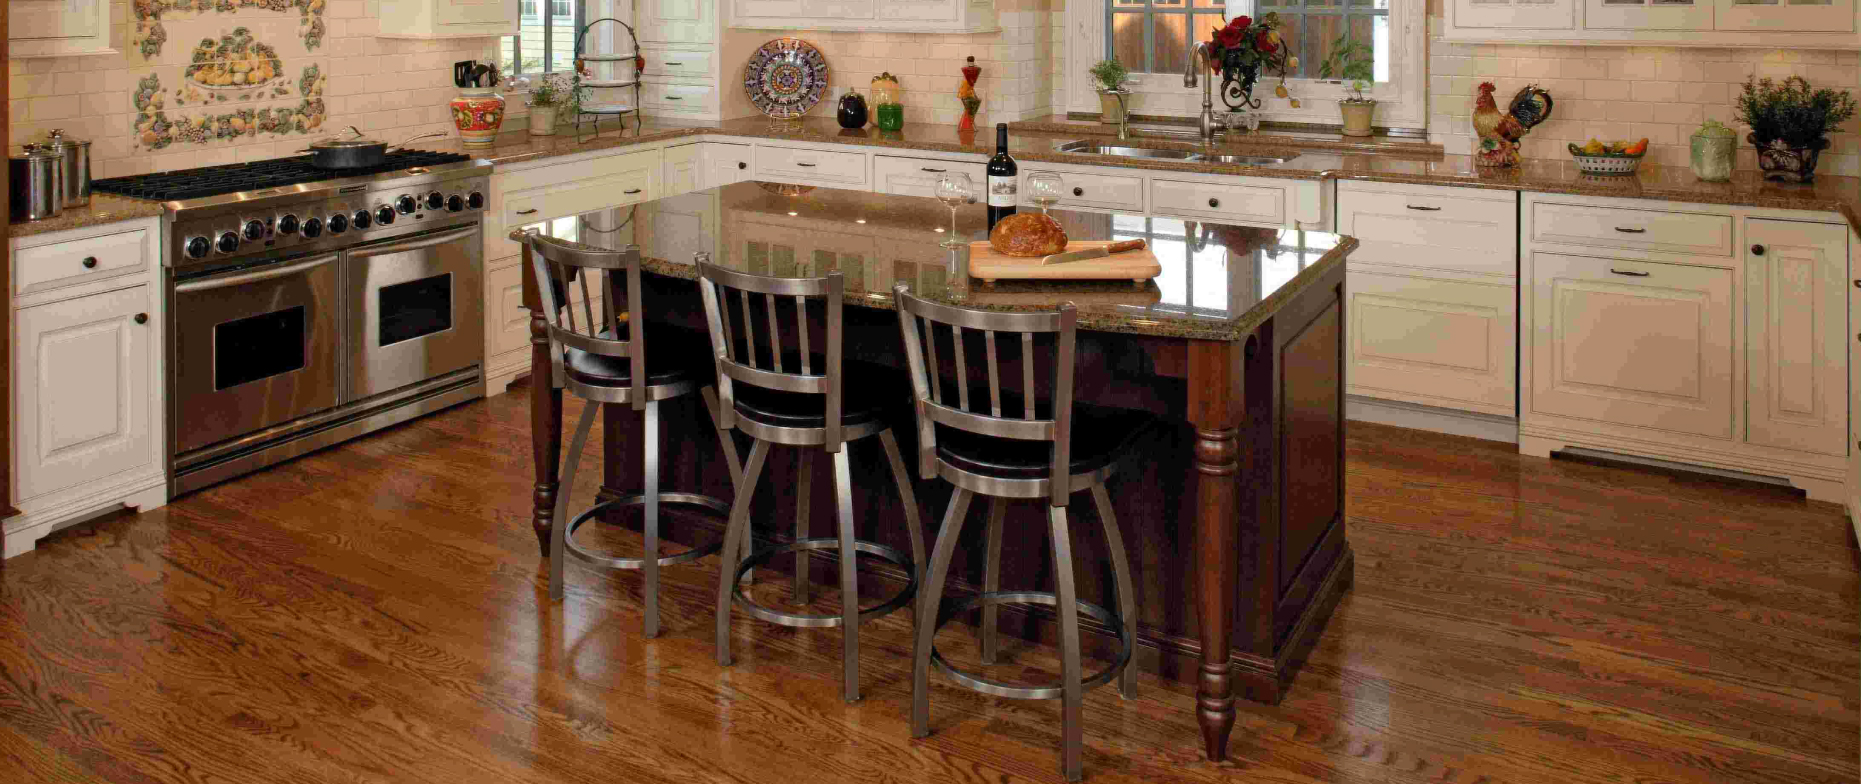 Laminate Puter Small Bar For Living Room Home Portable Kitchen Counter Stools | Bar Stools | Swivel Stools | Restaurant Seating